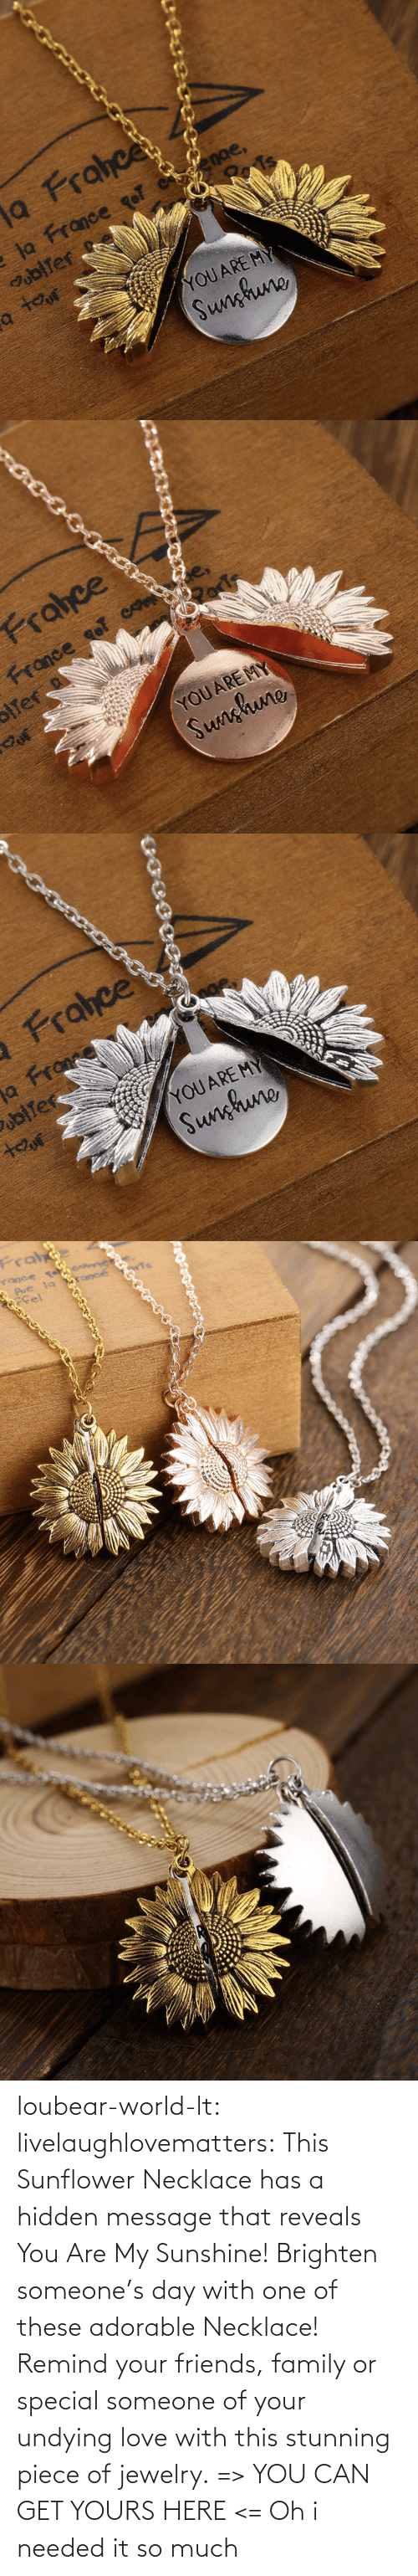 Can Get: loubear-world-lt: livelaughlovematters:   This Sunflower Necklace has a hidden message that reveals You Are My Sunshine! Brighten someone's day with one of these adorable Necklace! Remind your friends, family or special someone of your undying love with this stunning piece of jewelry. => YOU CAN GET YOURS HERE <=    Oh i needed it so much